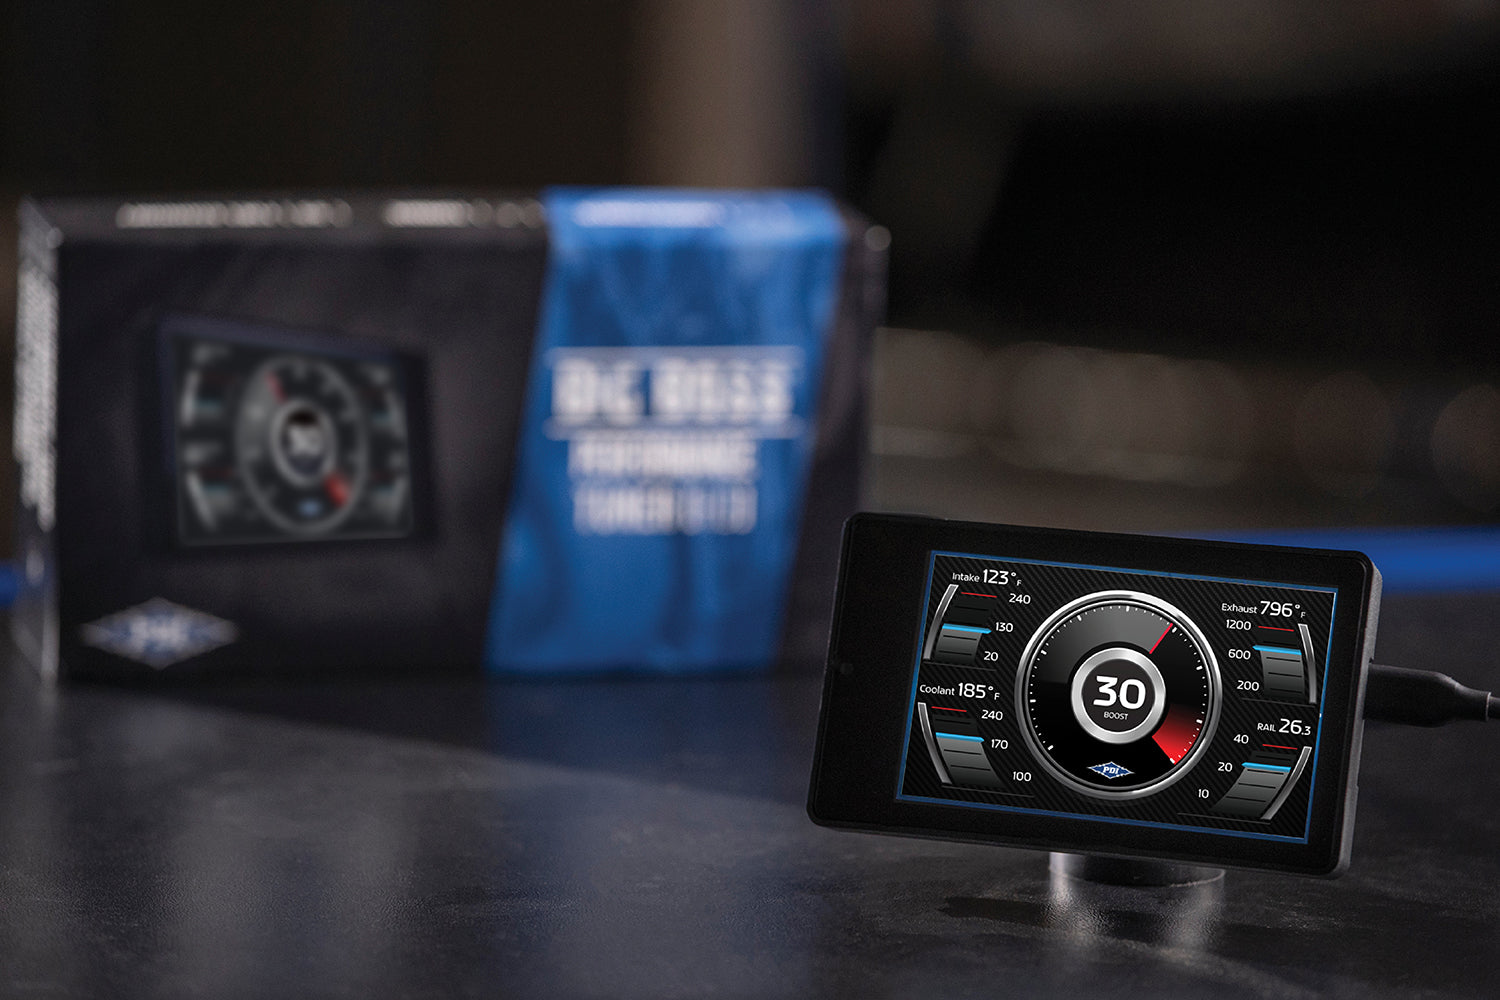 BIG BOSS PERFORMANCE TUNER FOR RV'S